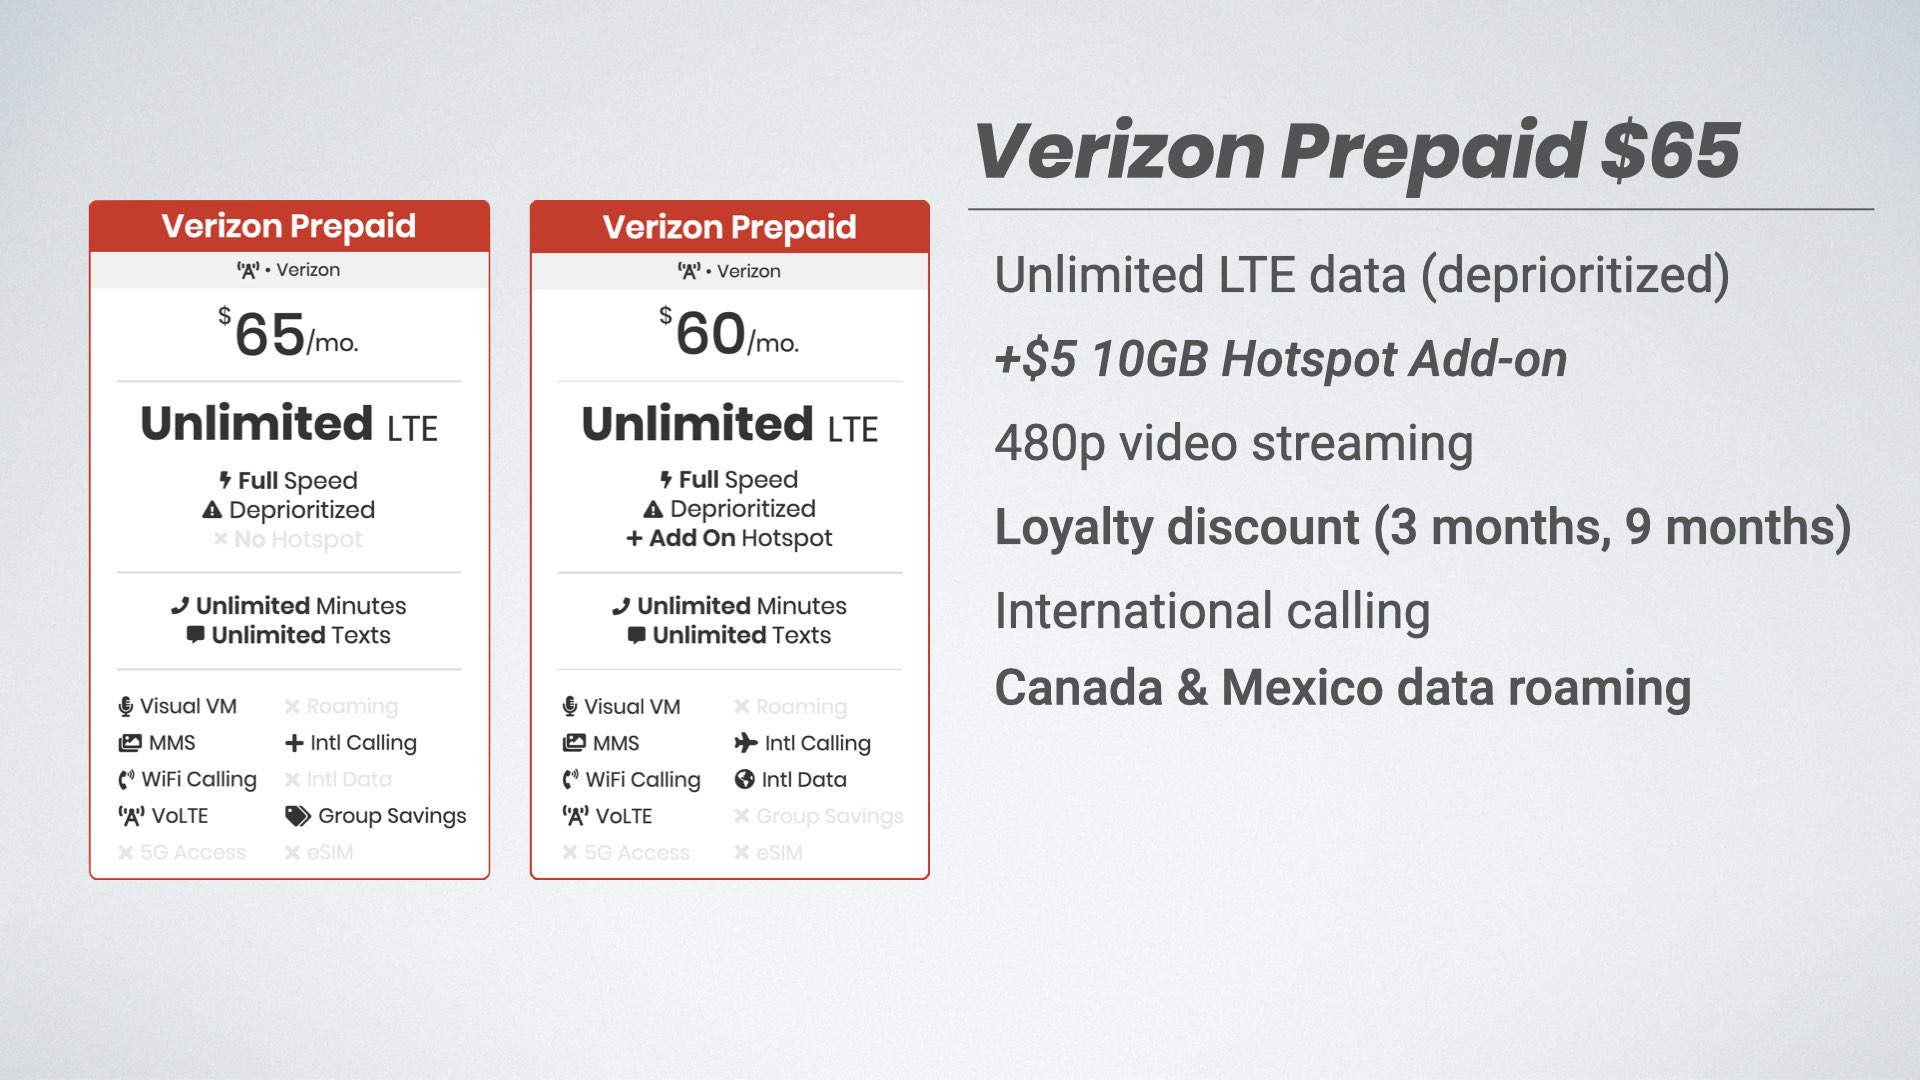 Verizon's unlimited prepaid plan comparison